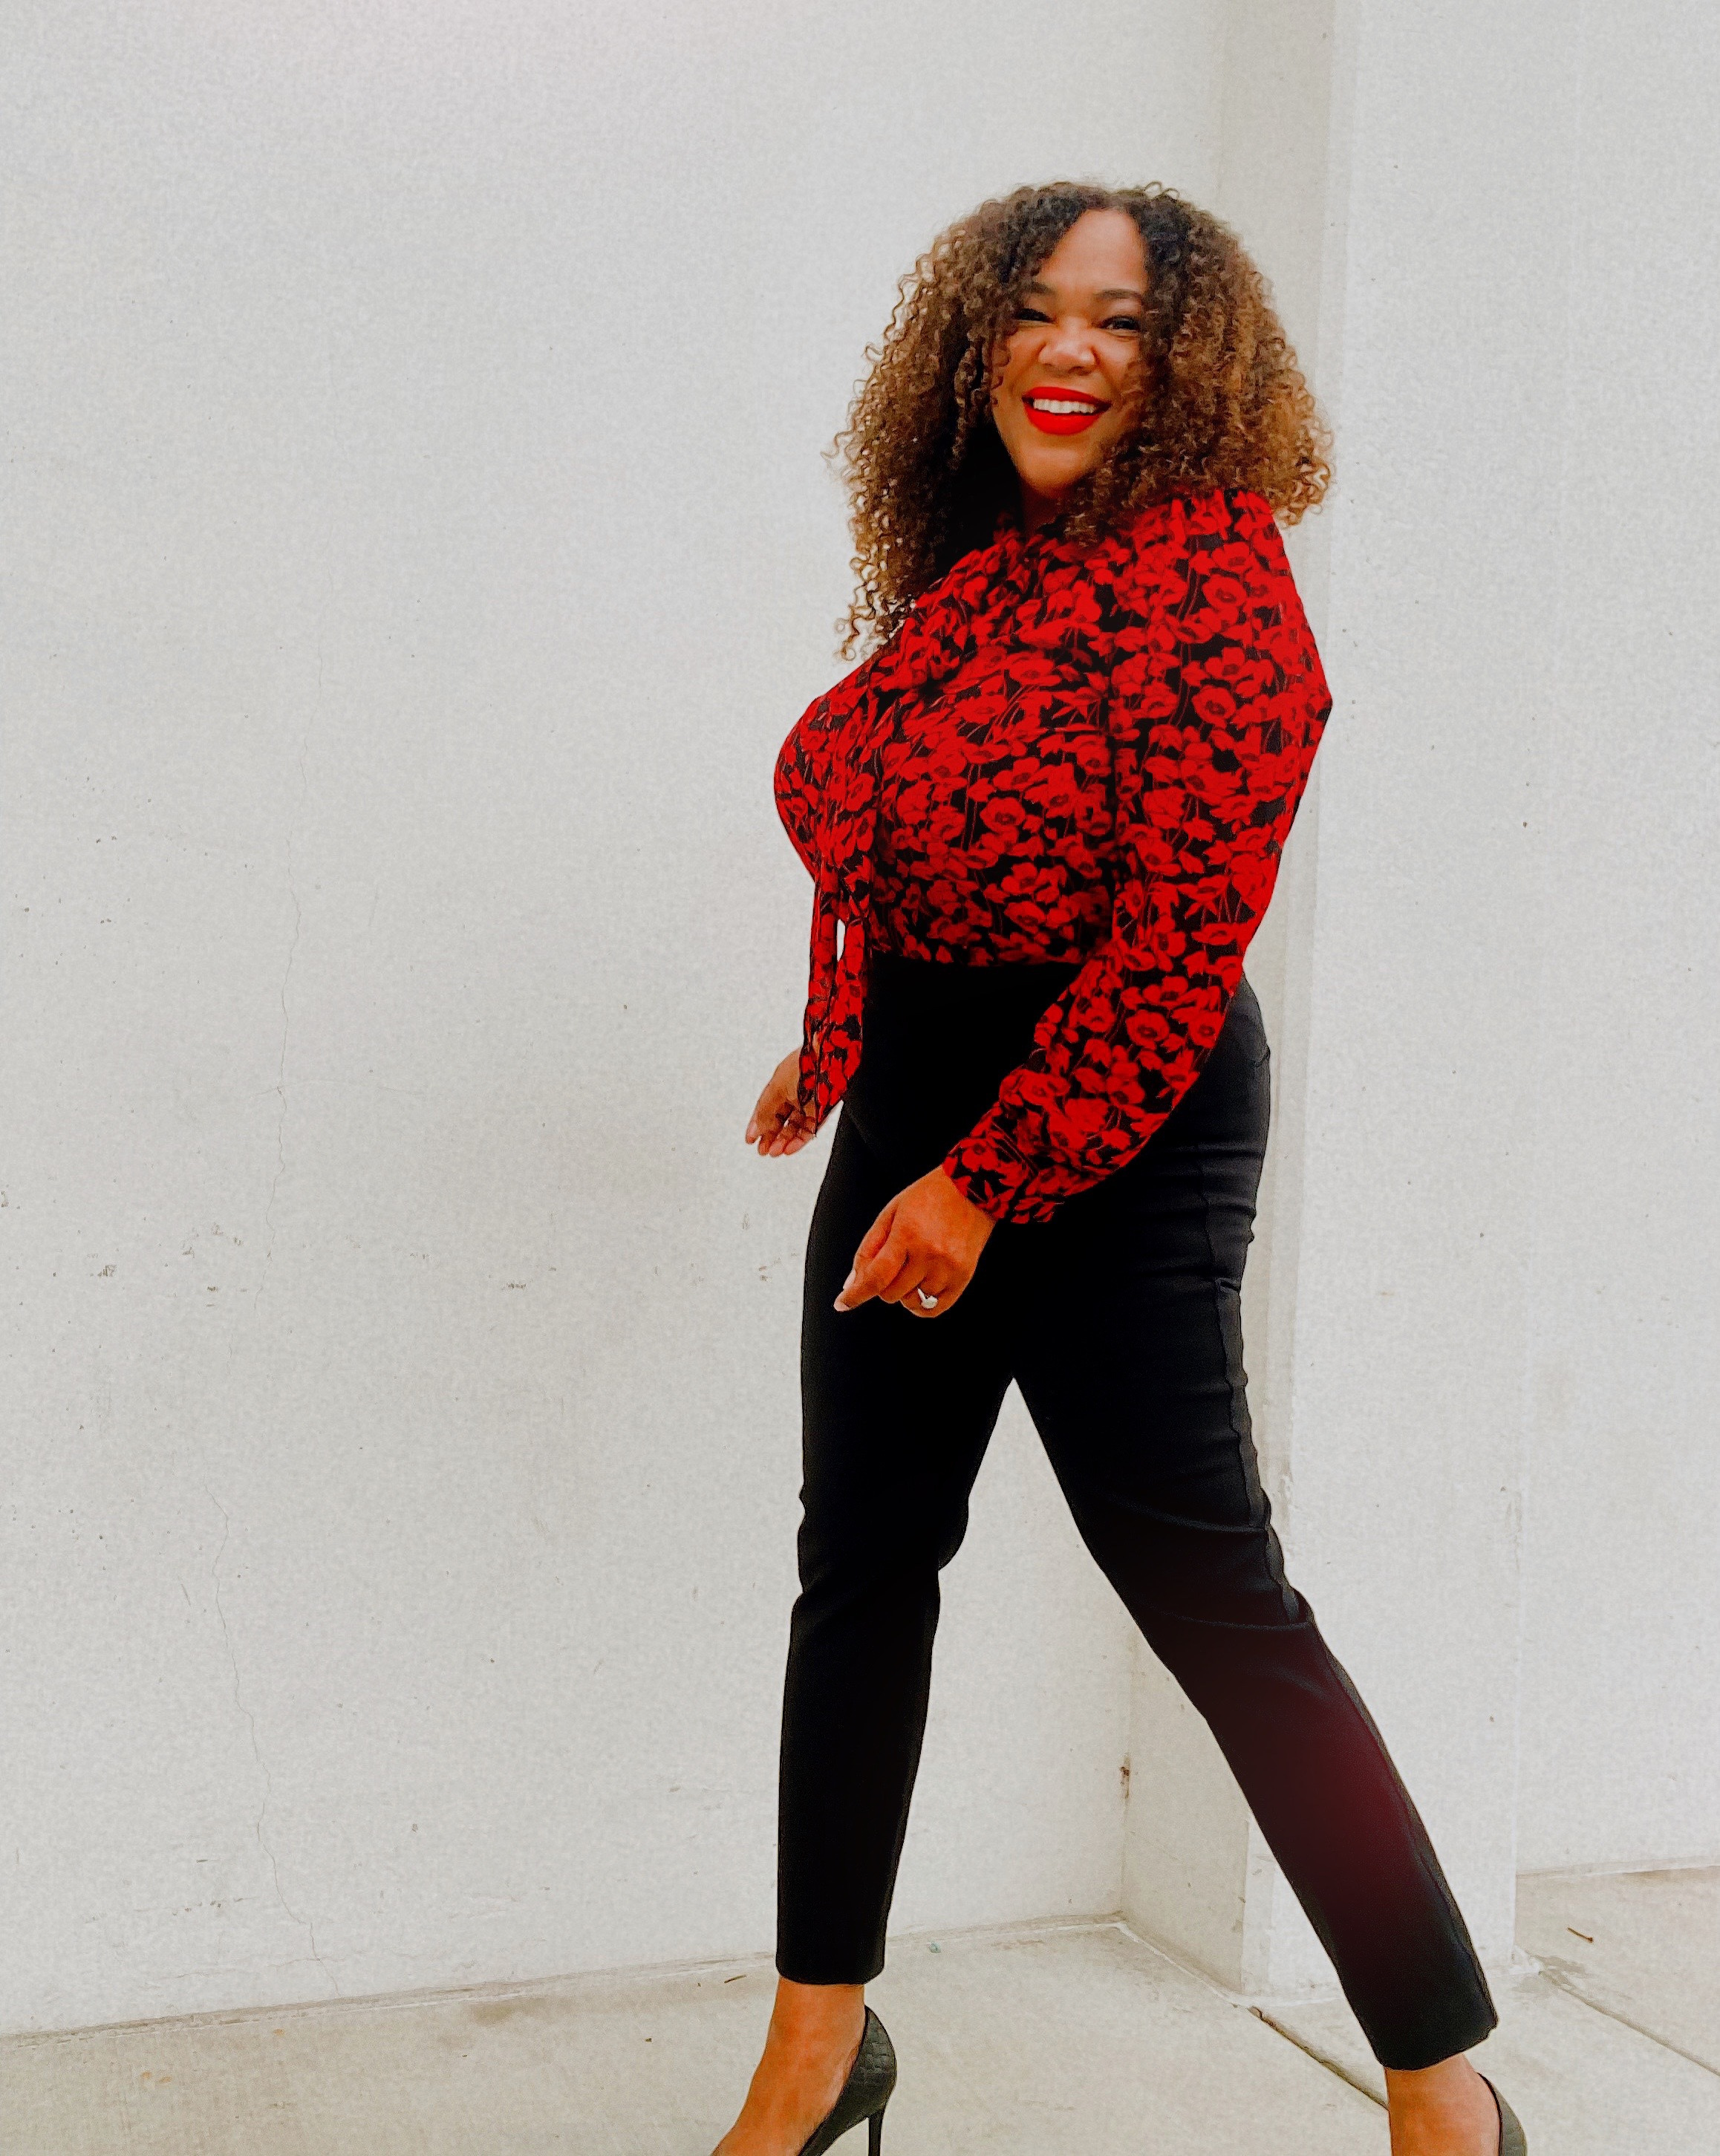 A Black Women in Black Pants